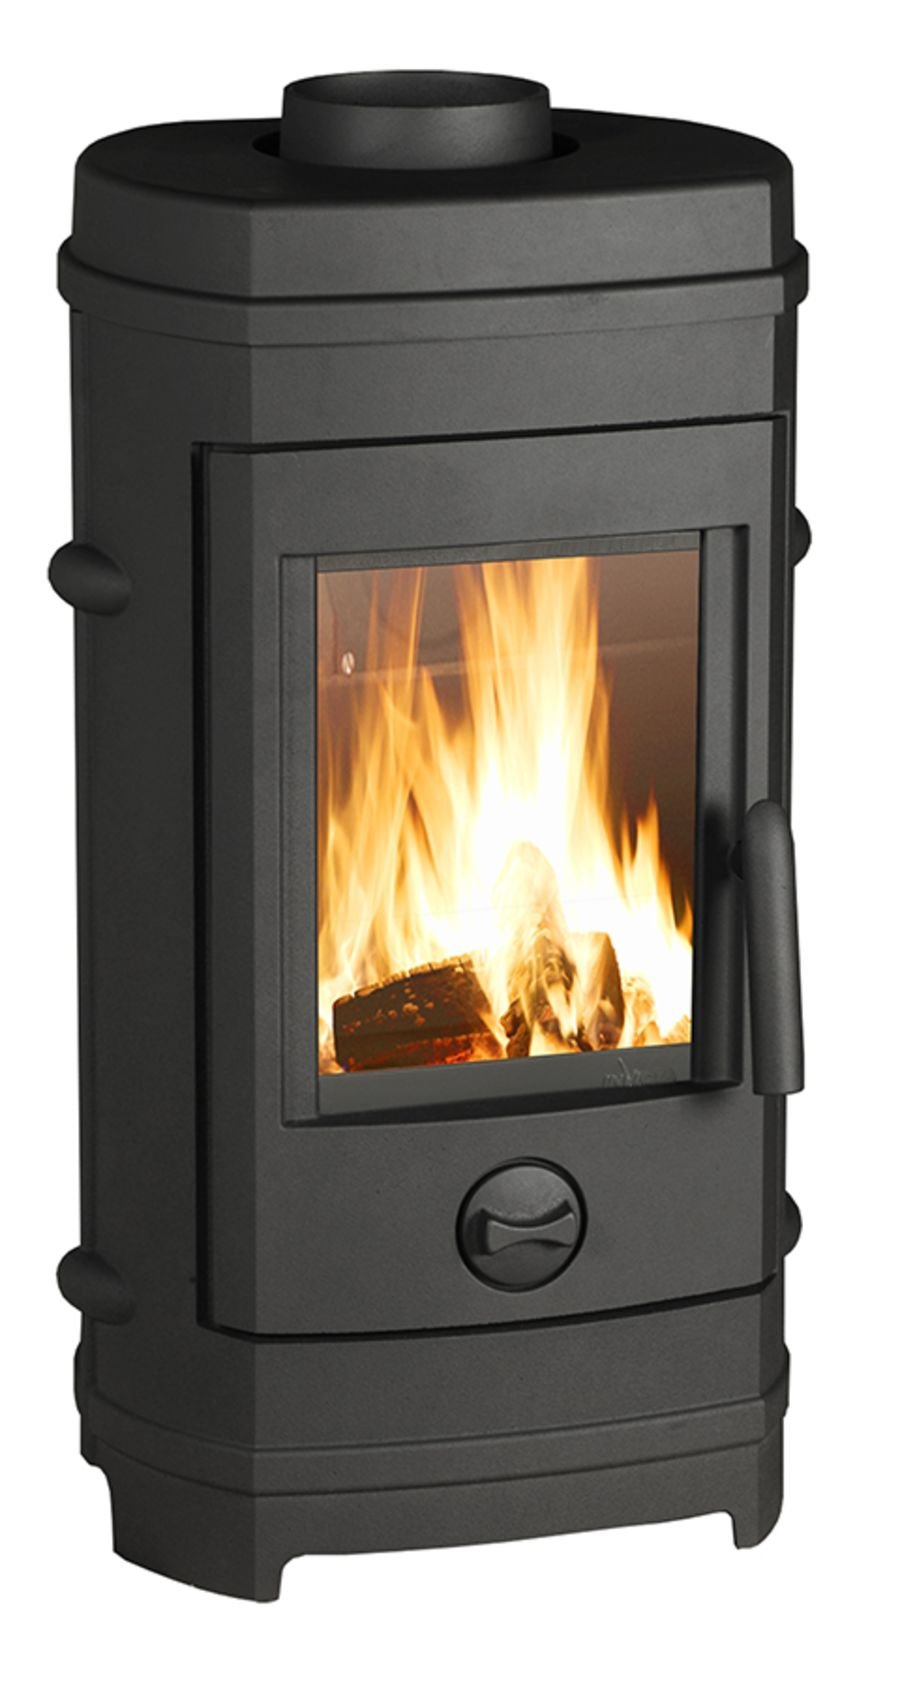 Invicta Remilly 7kw Ecodesign 2022 Cast Iron Wood Stove